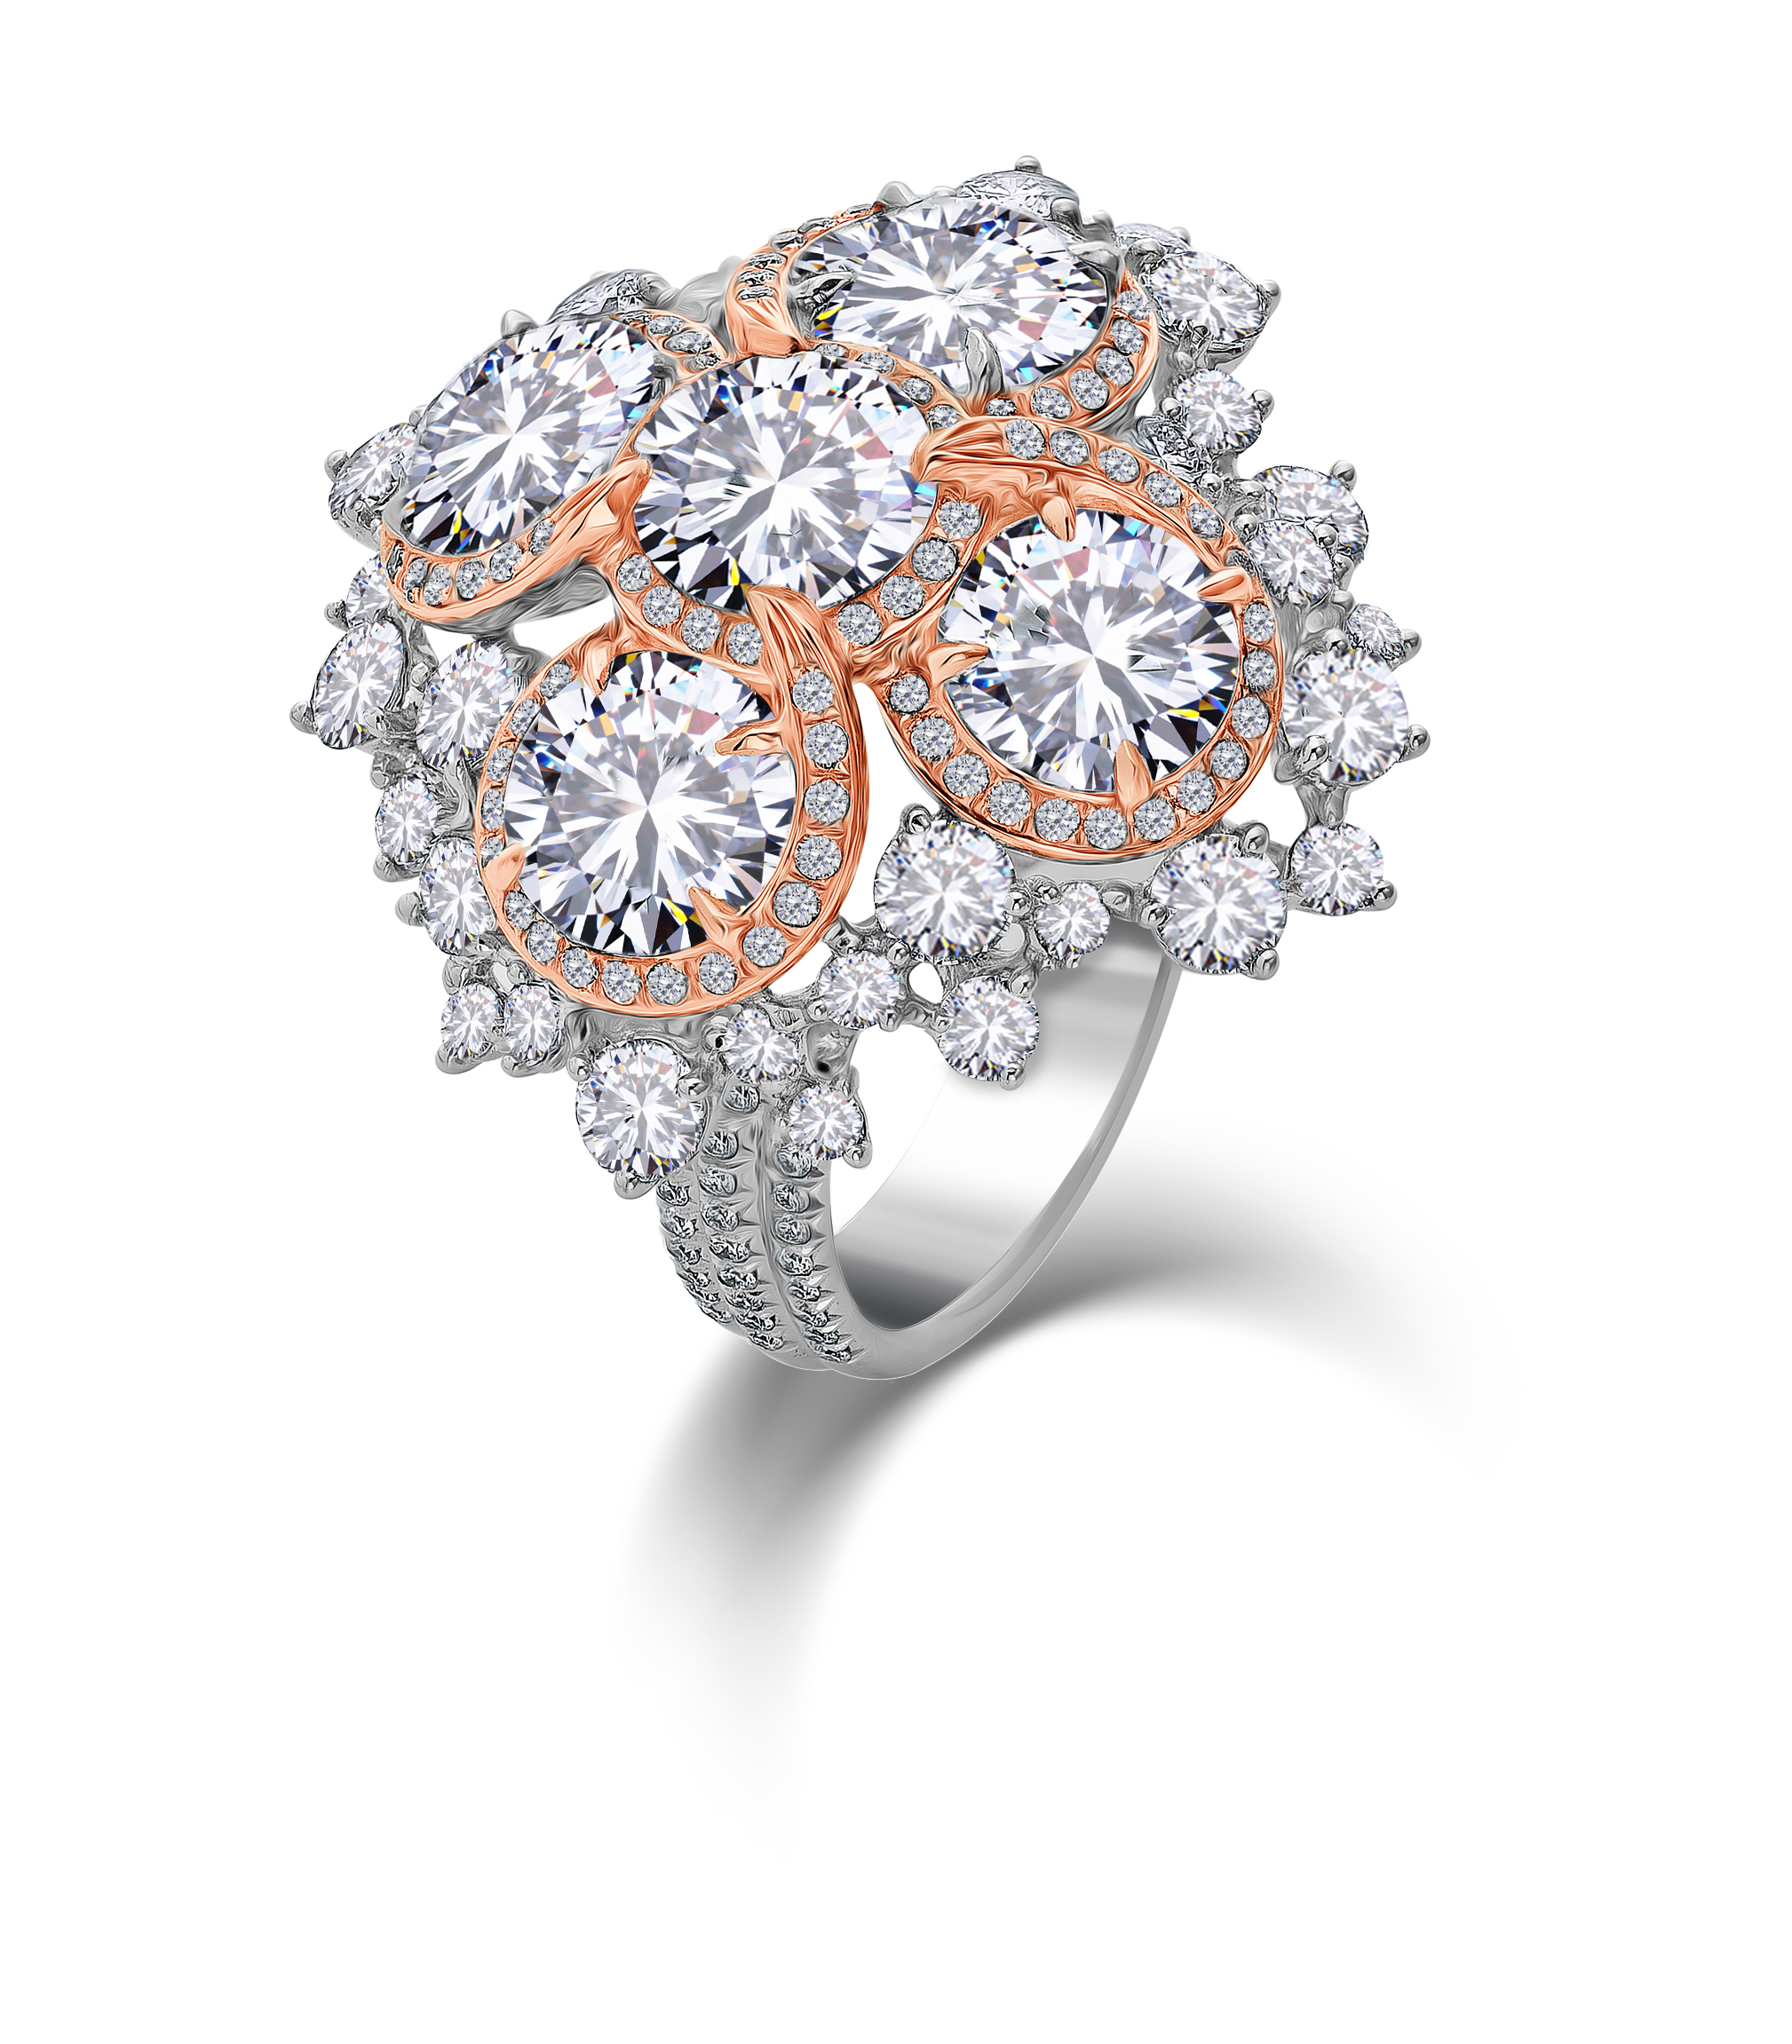 Diamond Solitaire Ring (172475)